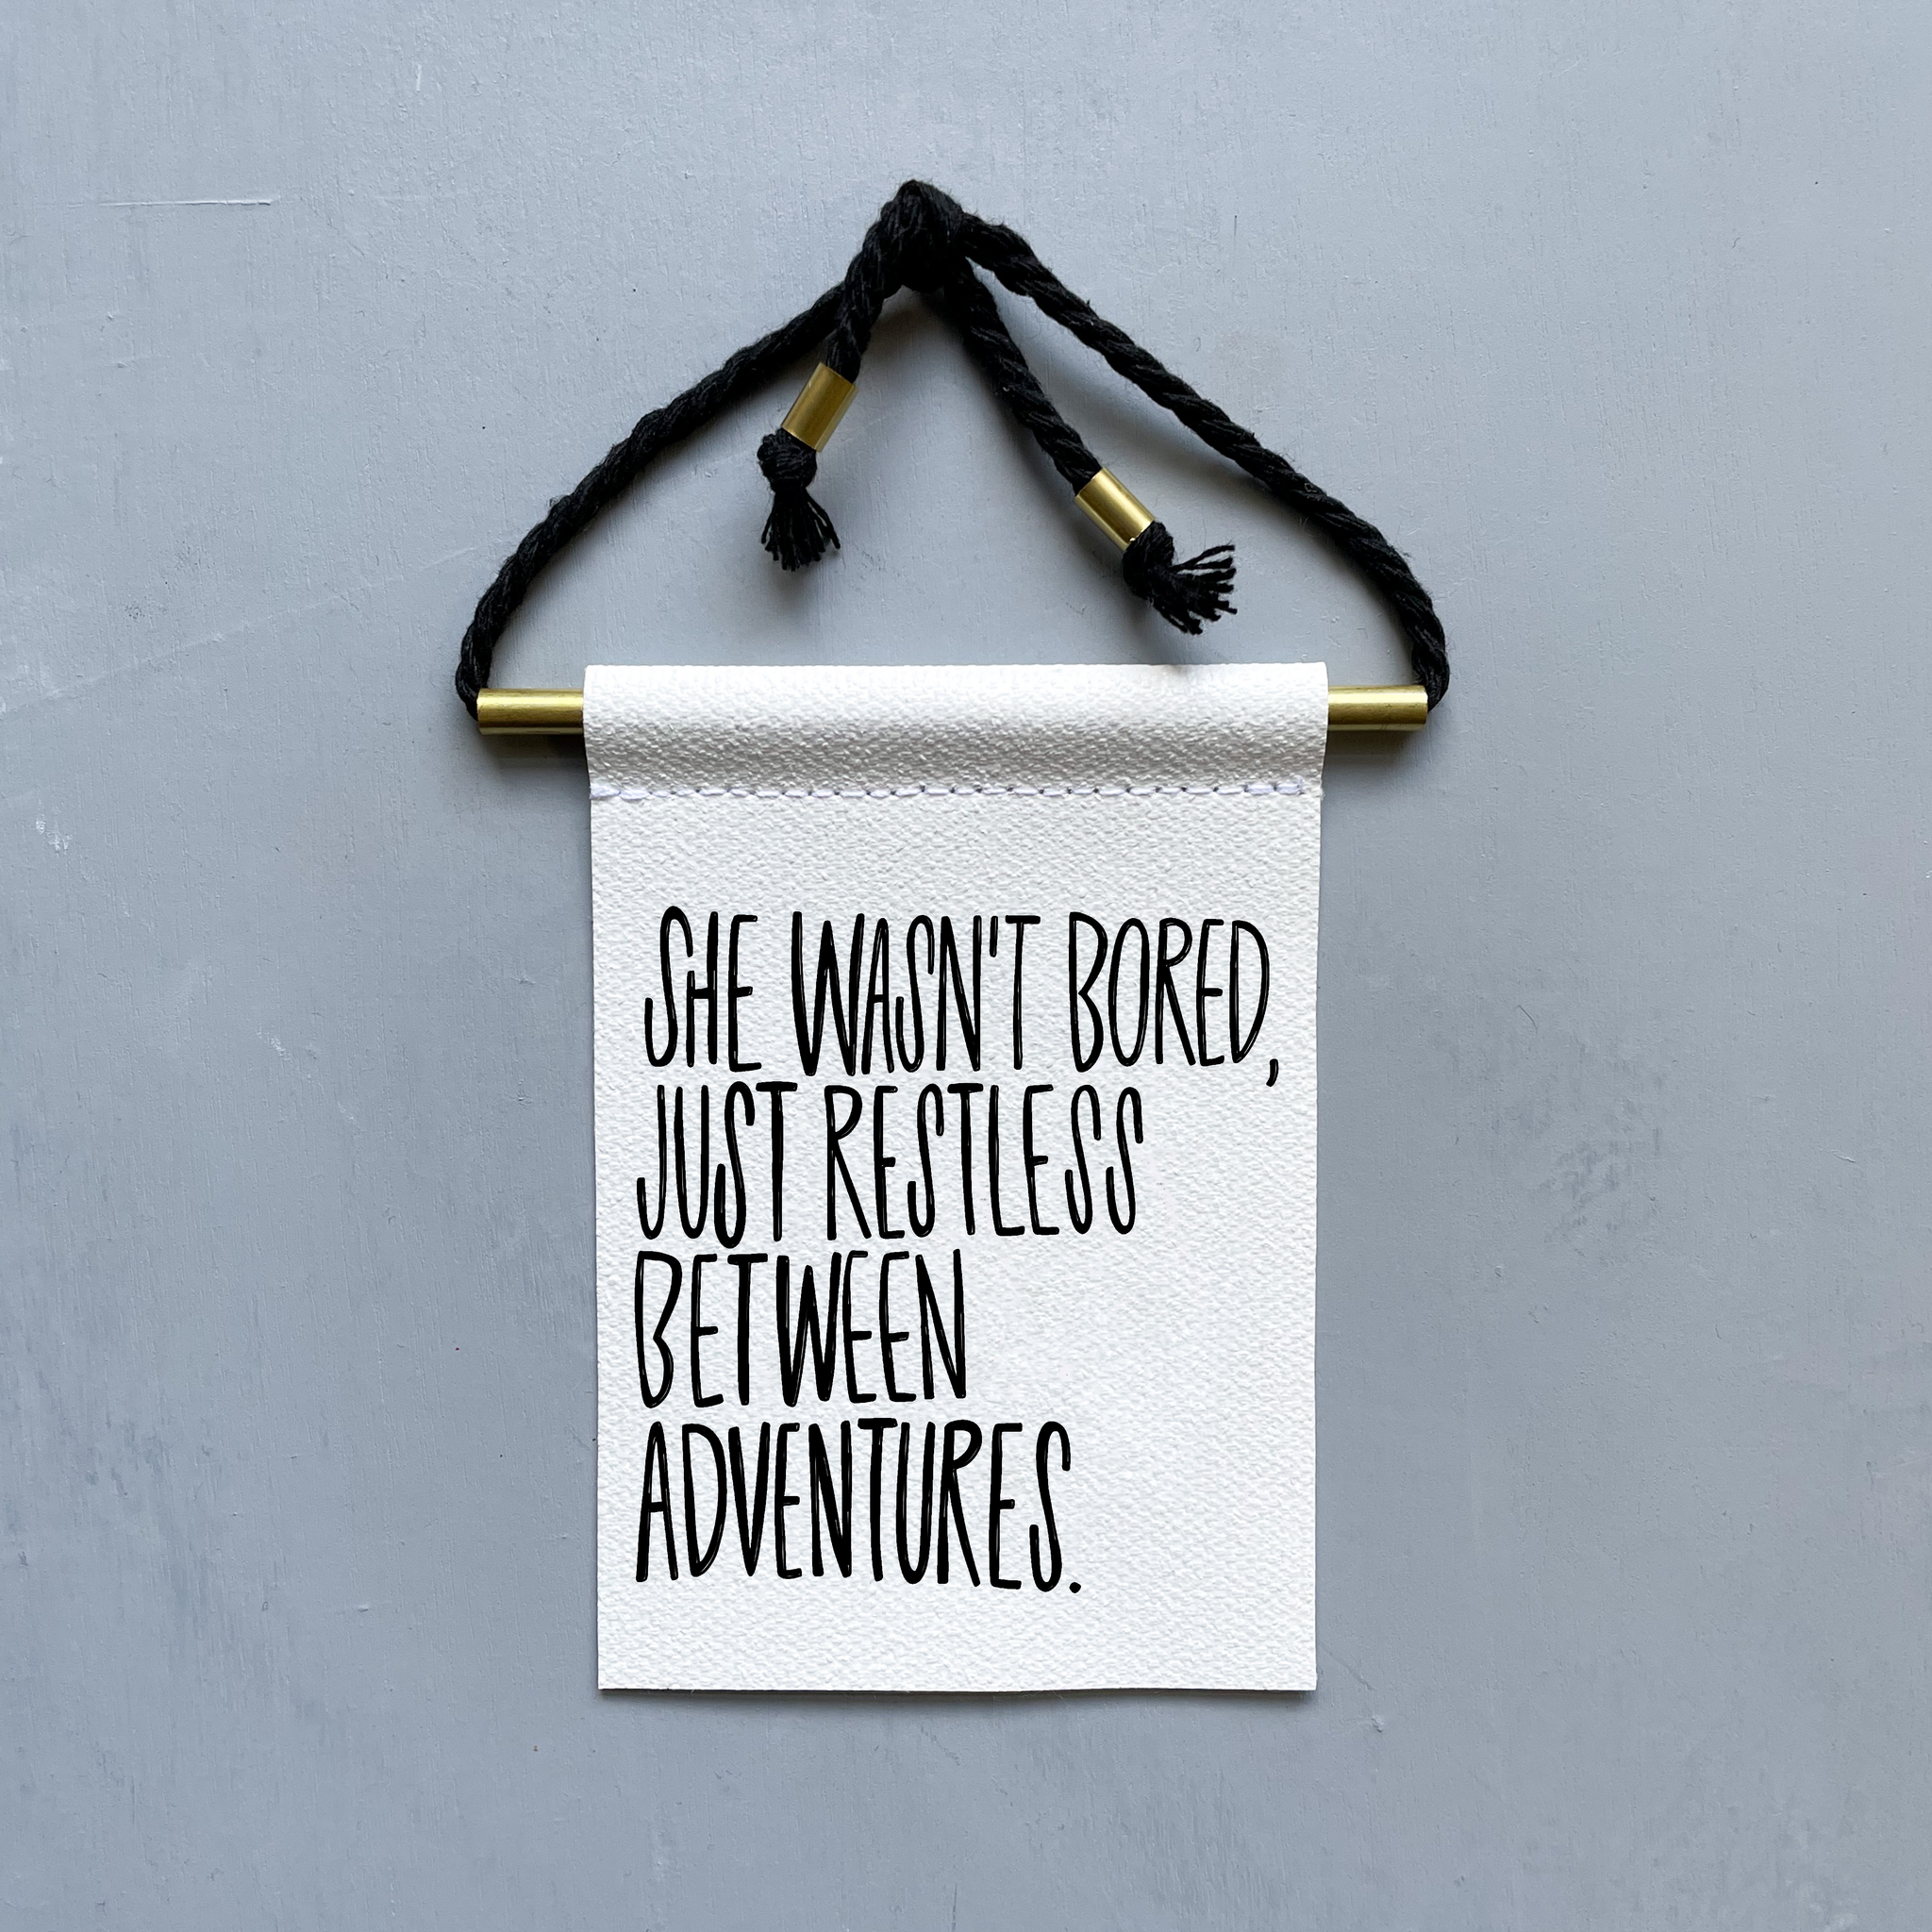 She Wasn't Bored, Just Restless Between Adventures Brass and String Hanging Banner